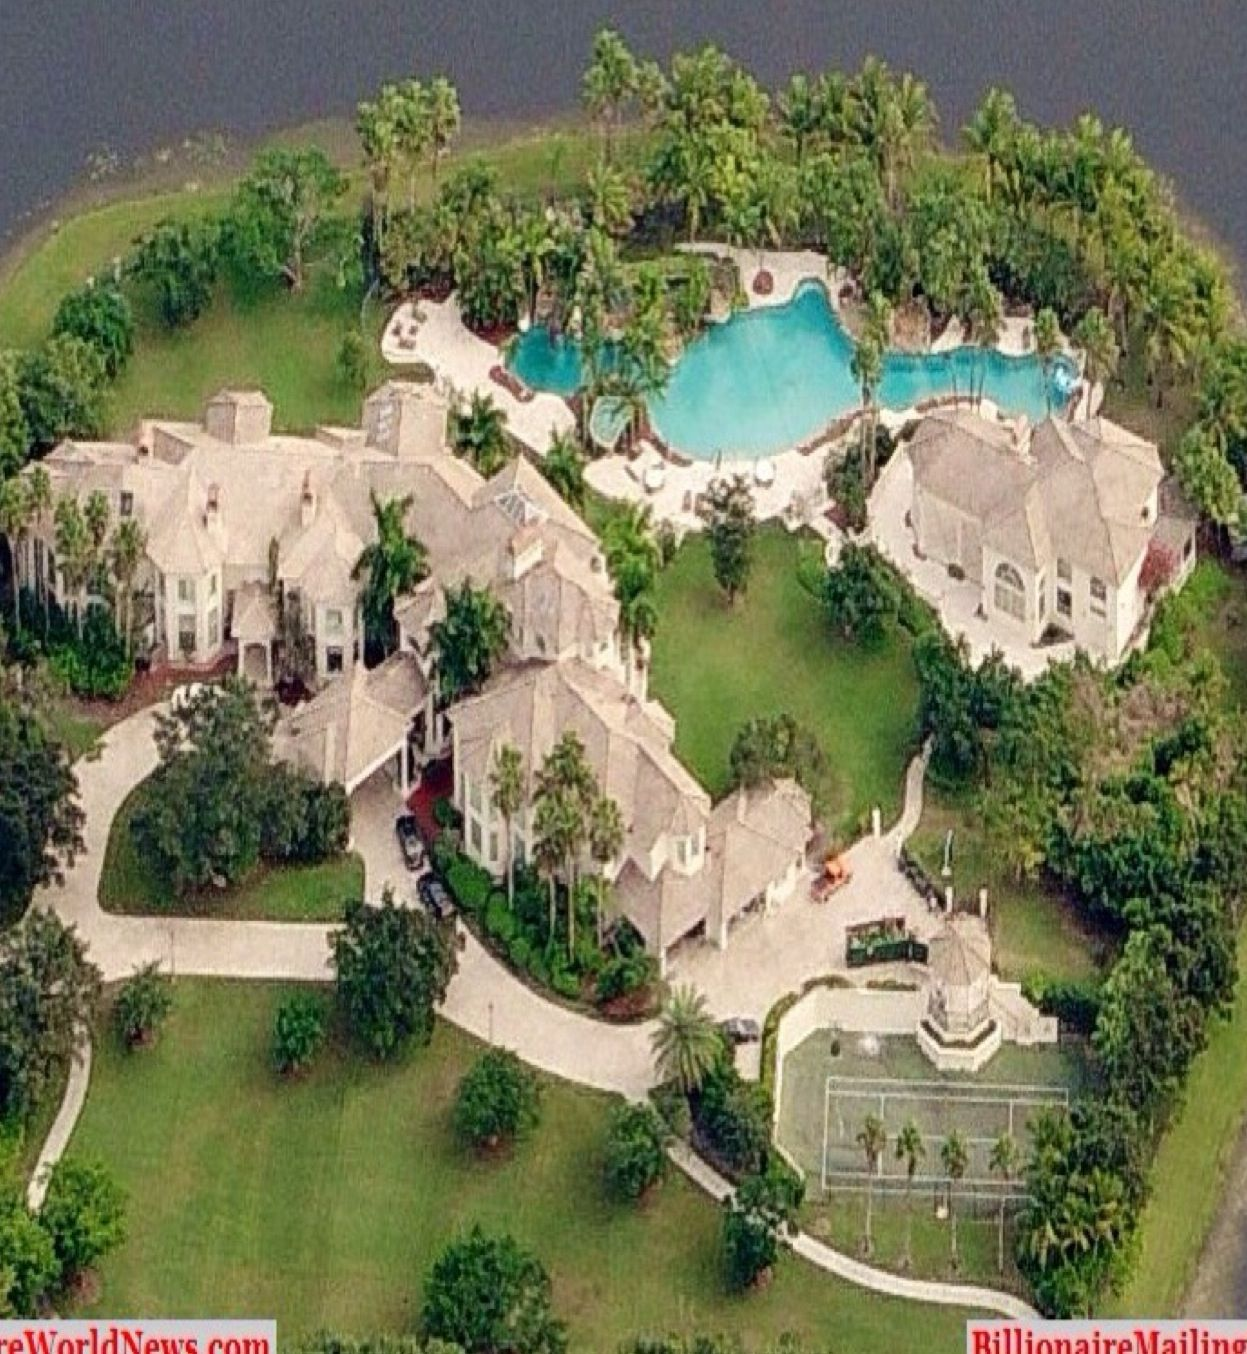 Luxury Homes In Florida: #Luxury Mansions In Florida #LuxurydotCom